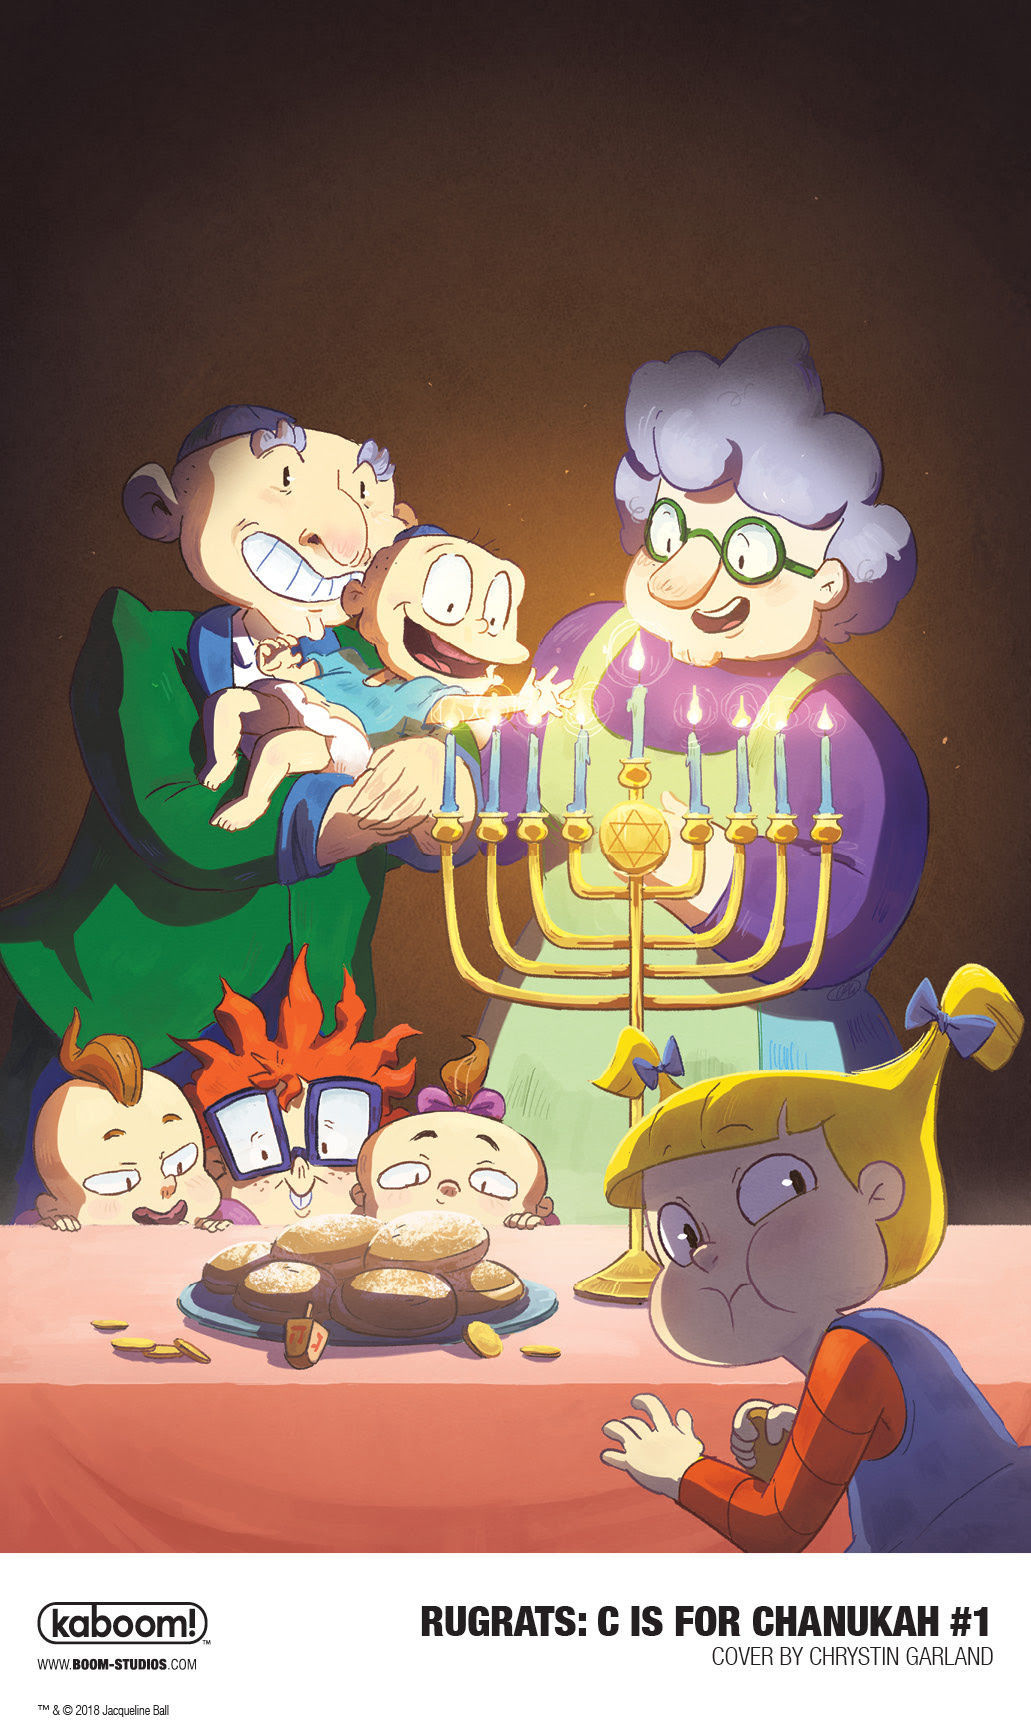 RUGRATS: C IS FOR CHANUKAH #1,